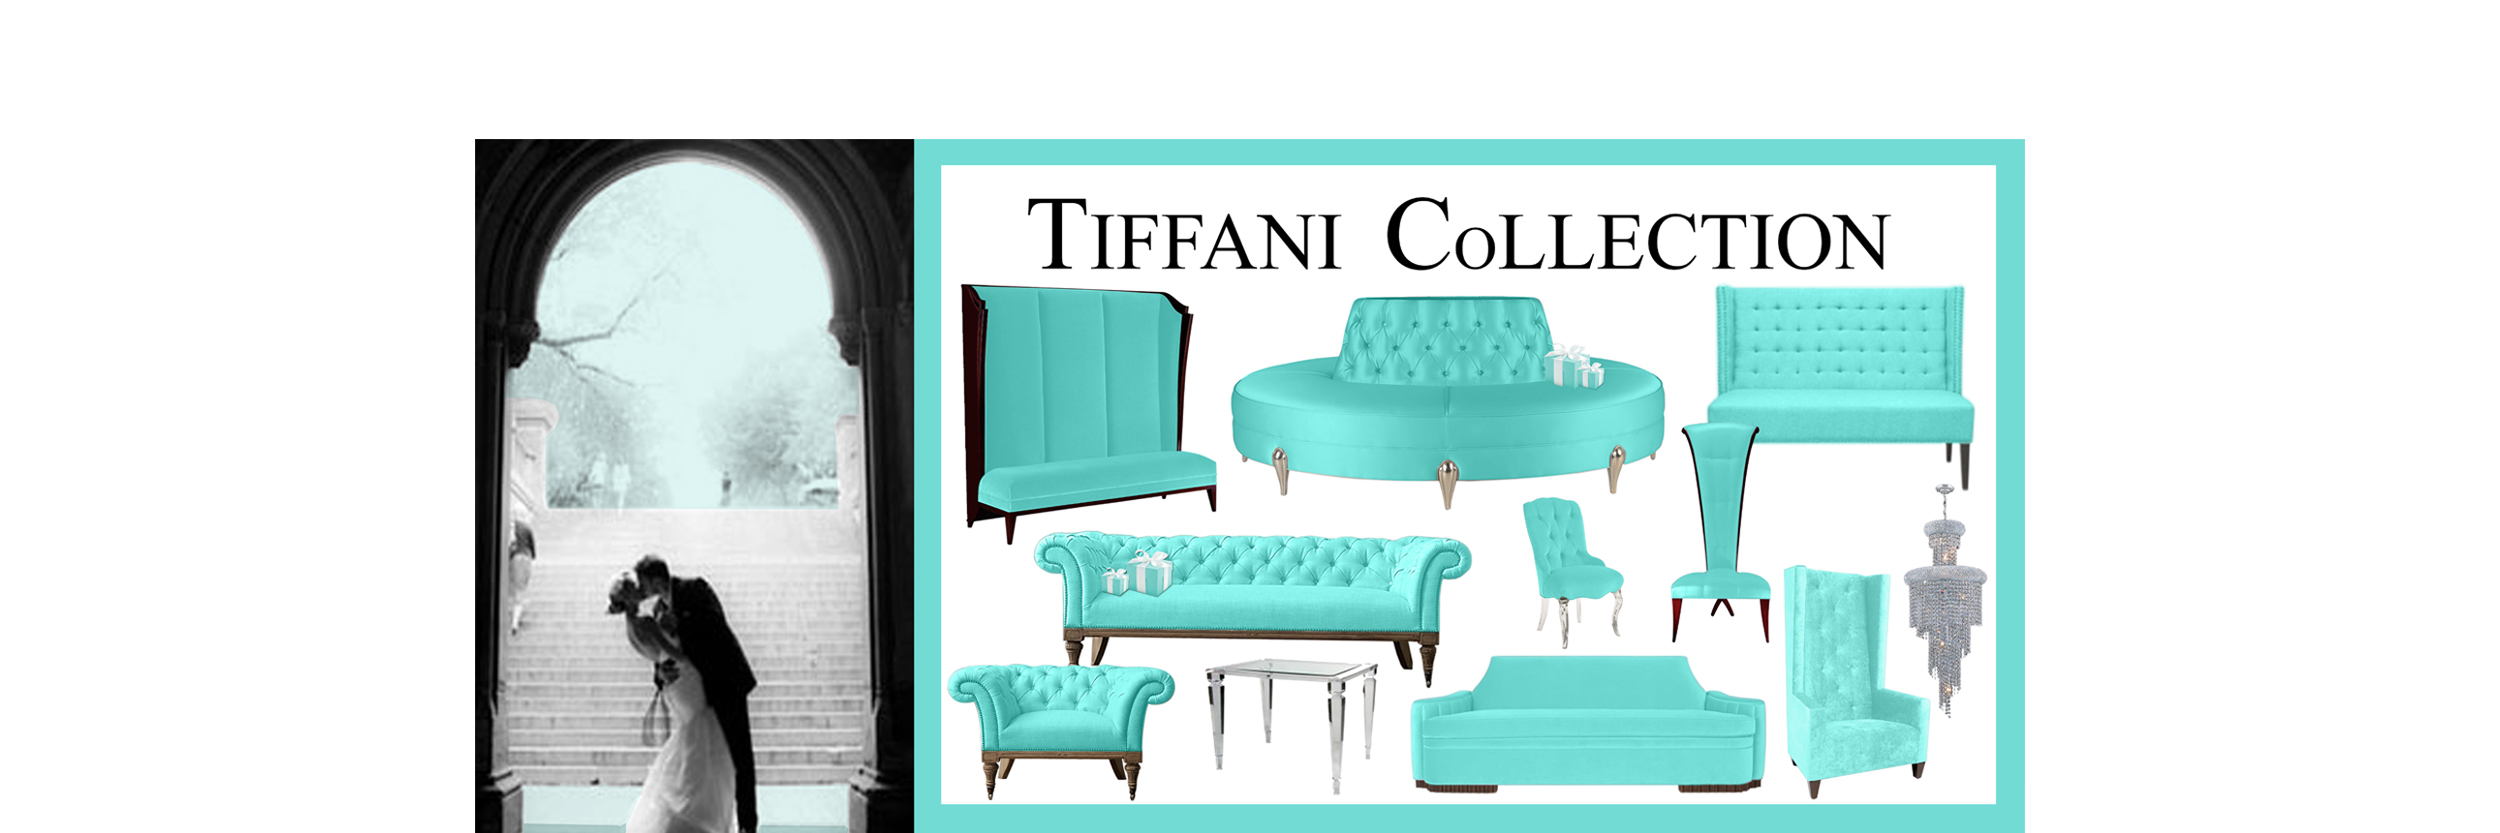 copy-REVISED-TIFFANI-COLLECITON-WEB-BANNER